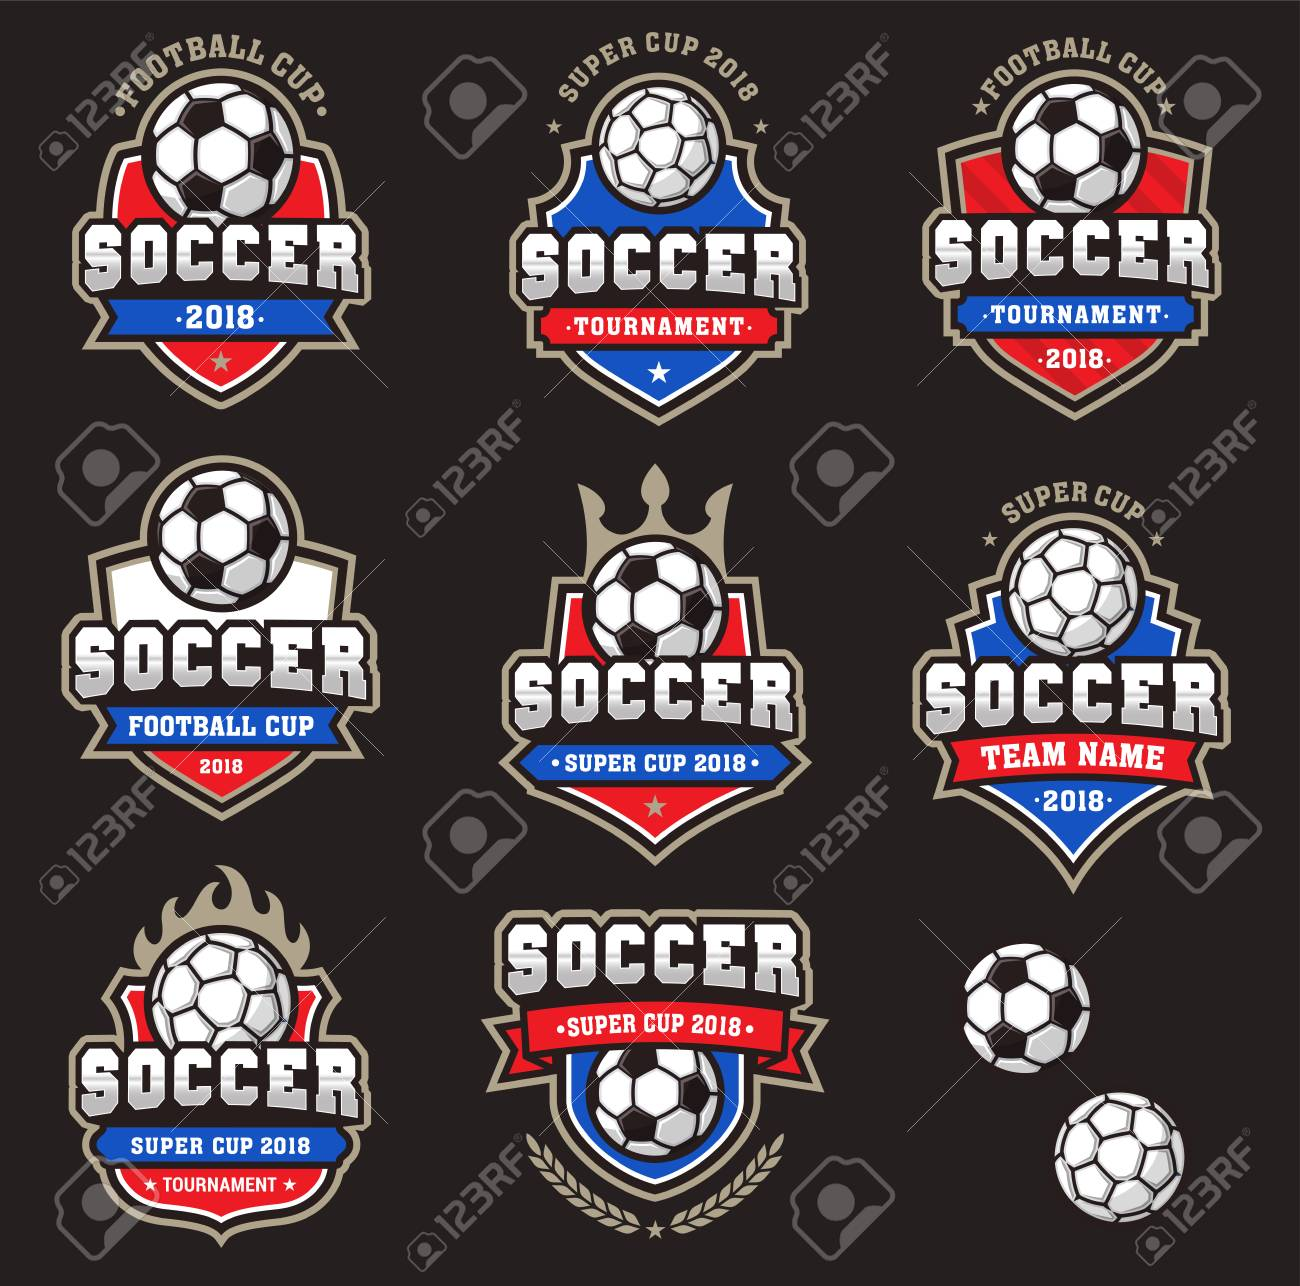 Collection of generic Football or Soccer team logos of Championship Logos - 105455711